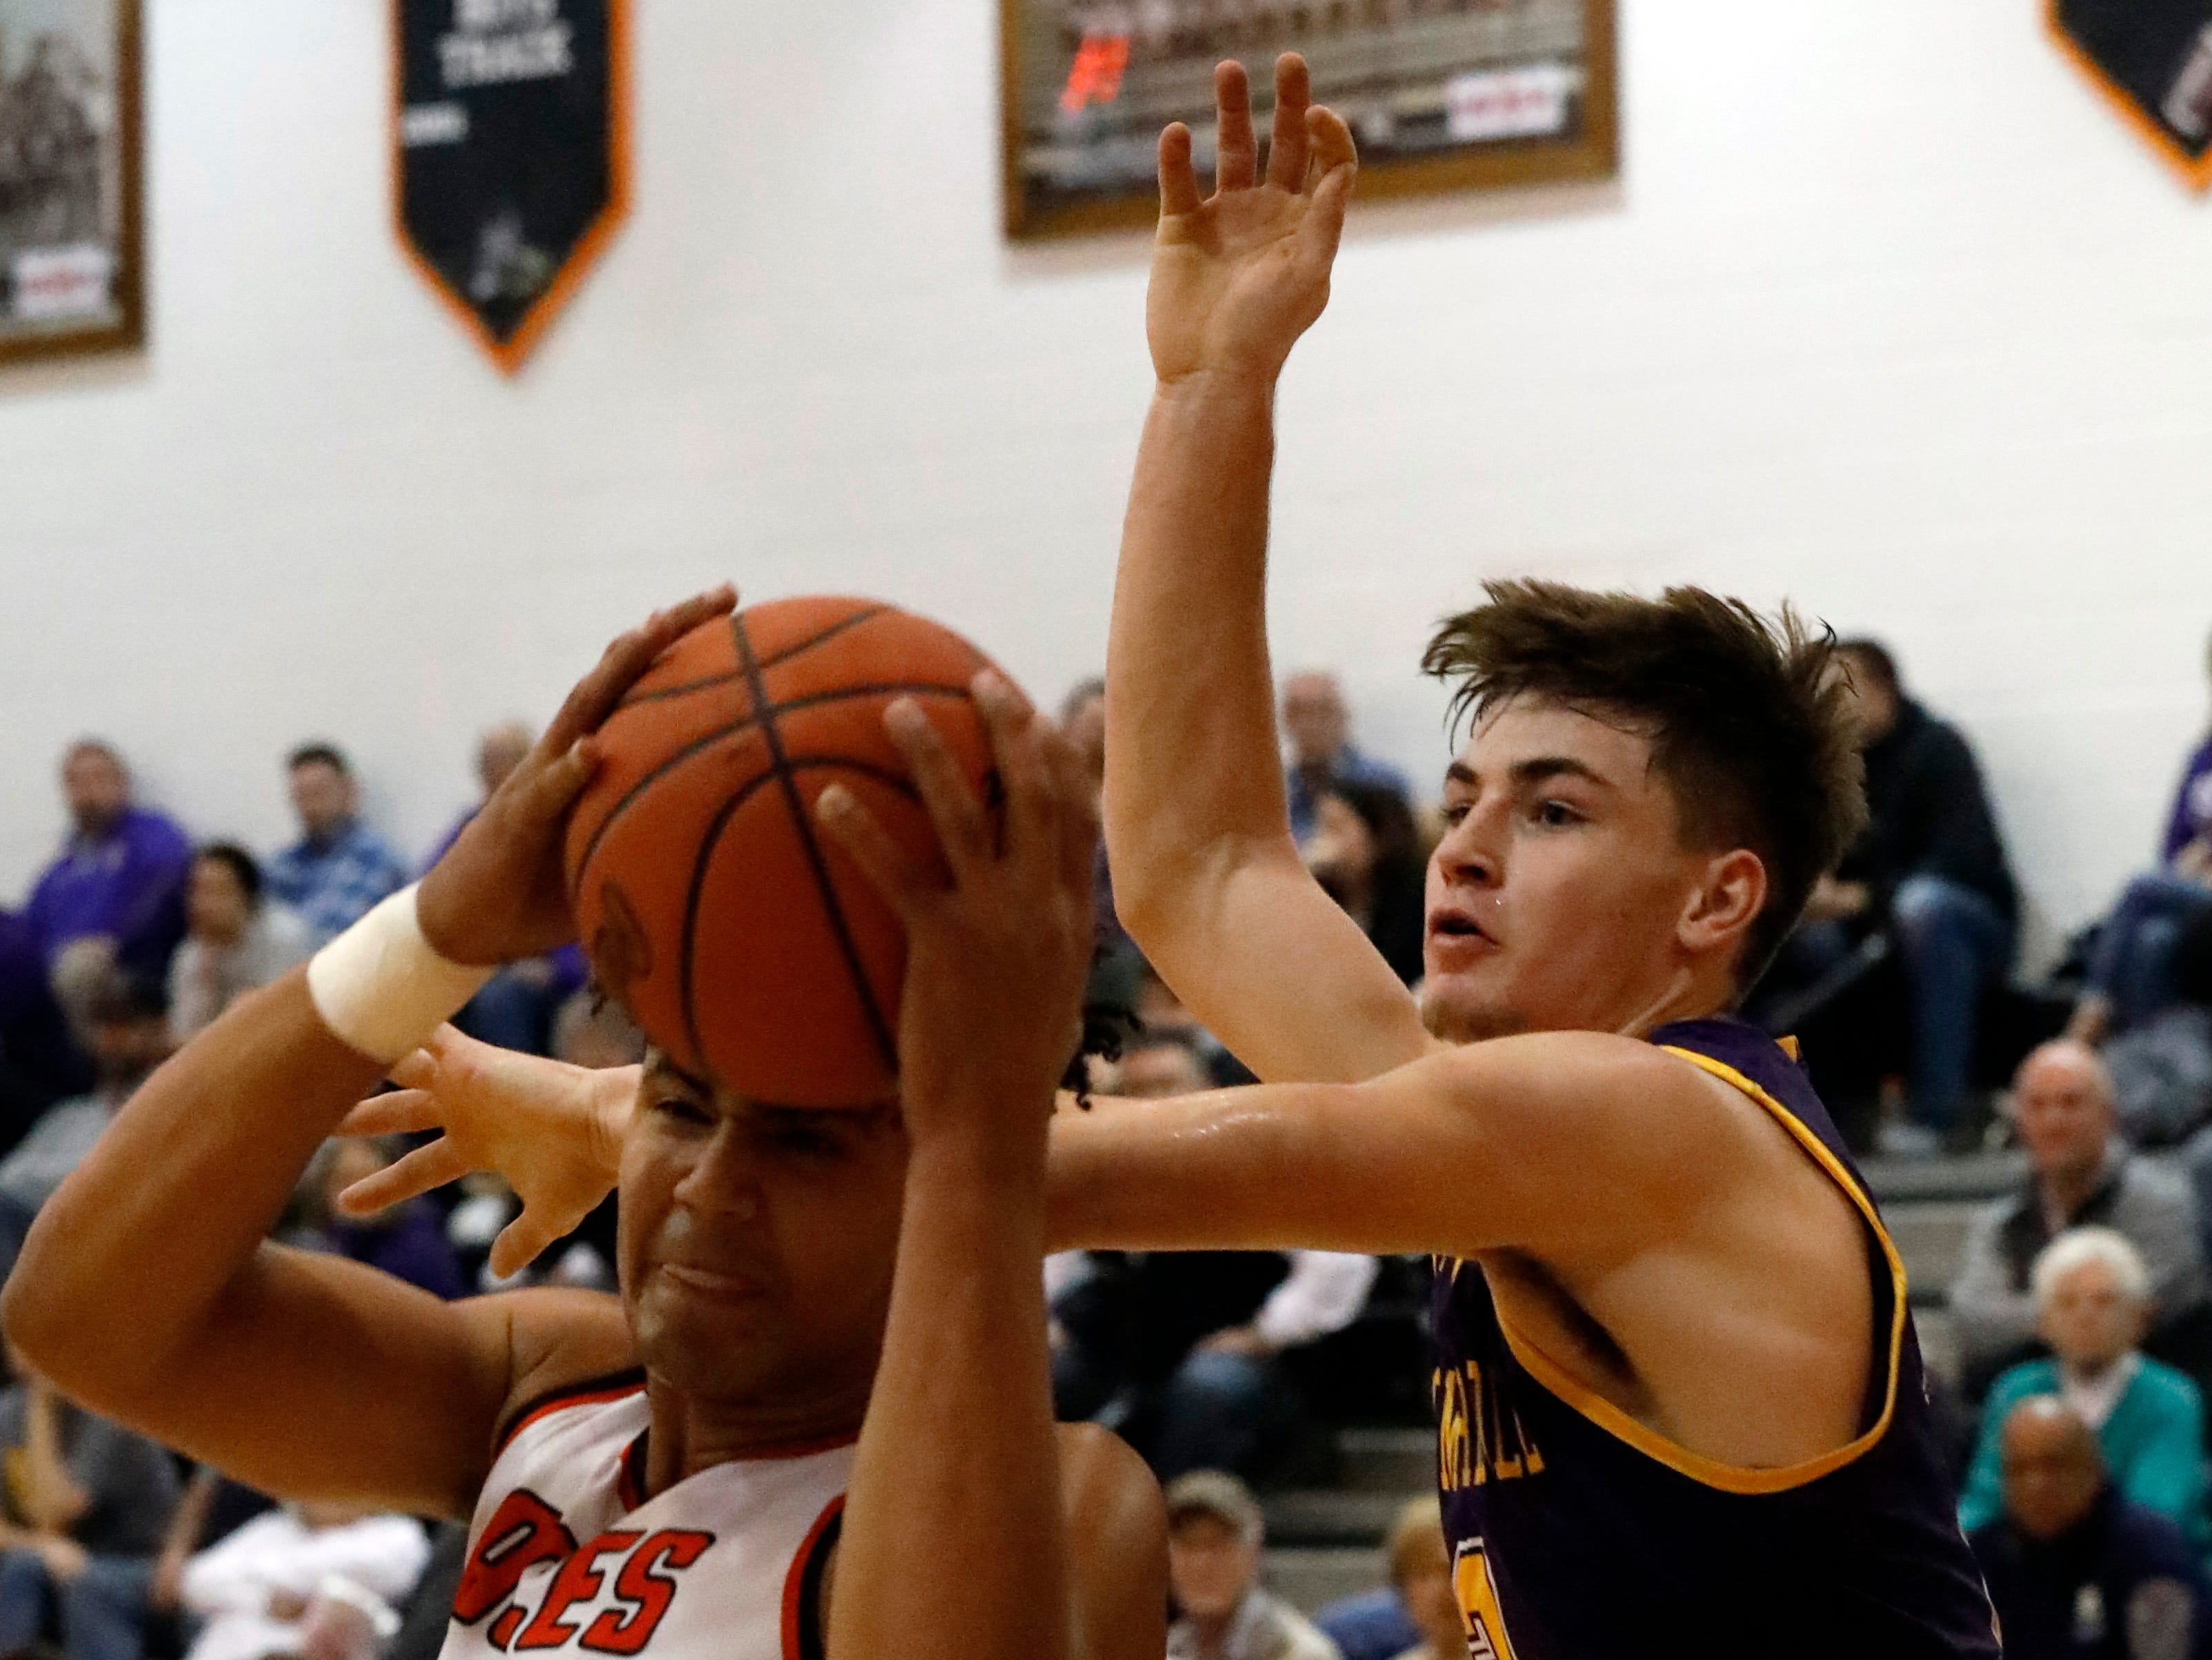 Amanda-Clearkcreek's Alex Smith pulls down a rebound as Bloom-Carroll's Otto Kuhns tries to knock the ball away during Friday night's game, Dec. 14, 2018, in Amanda-Clearcreek High School in Amanda.